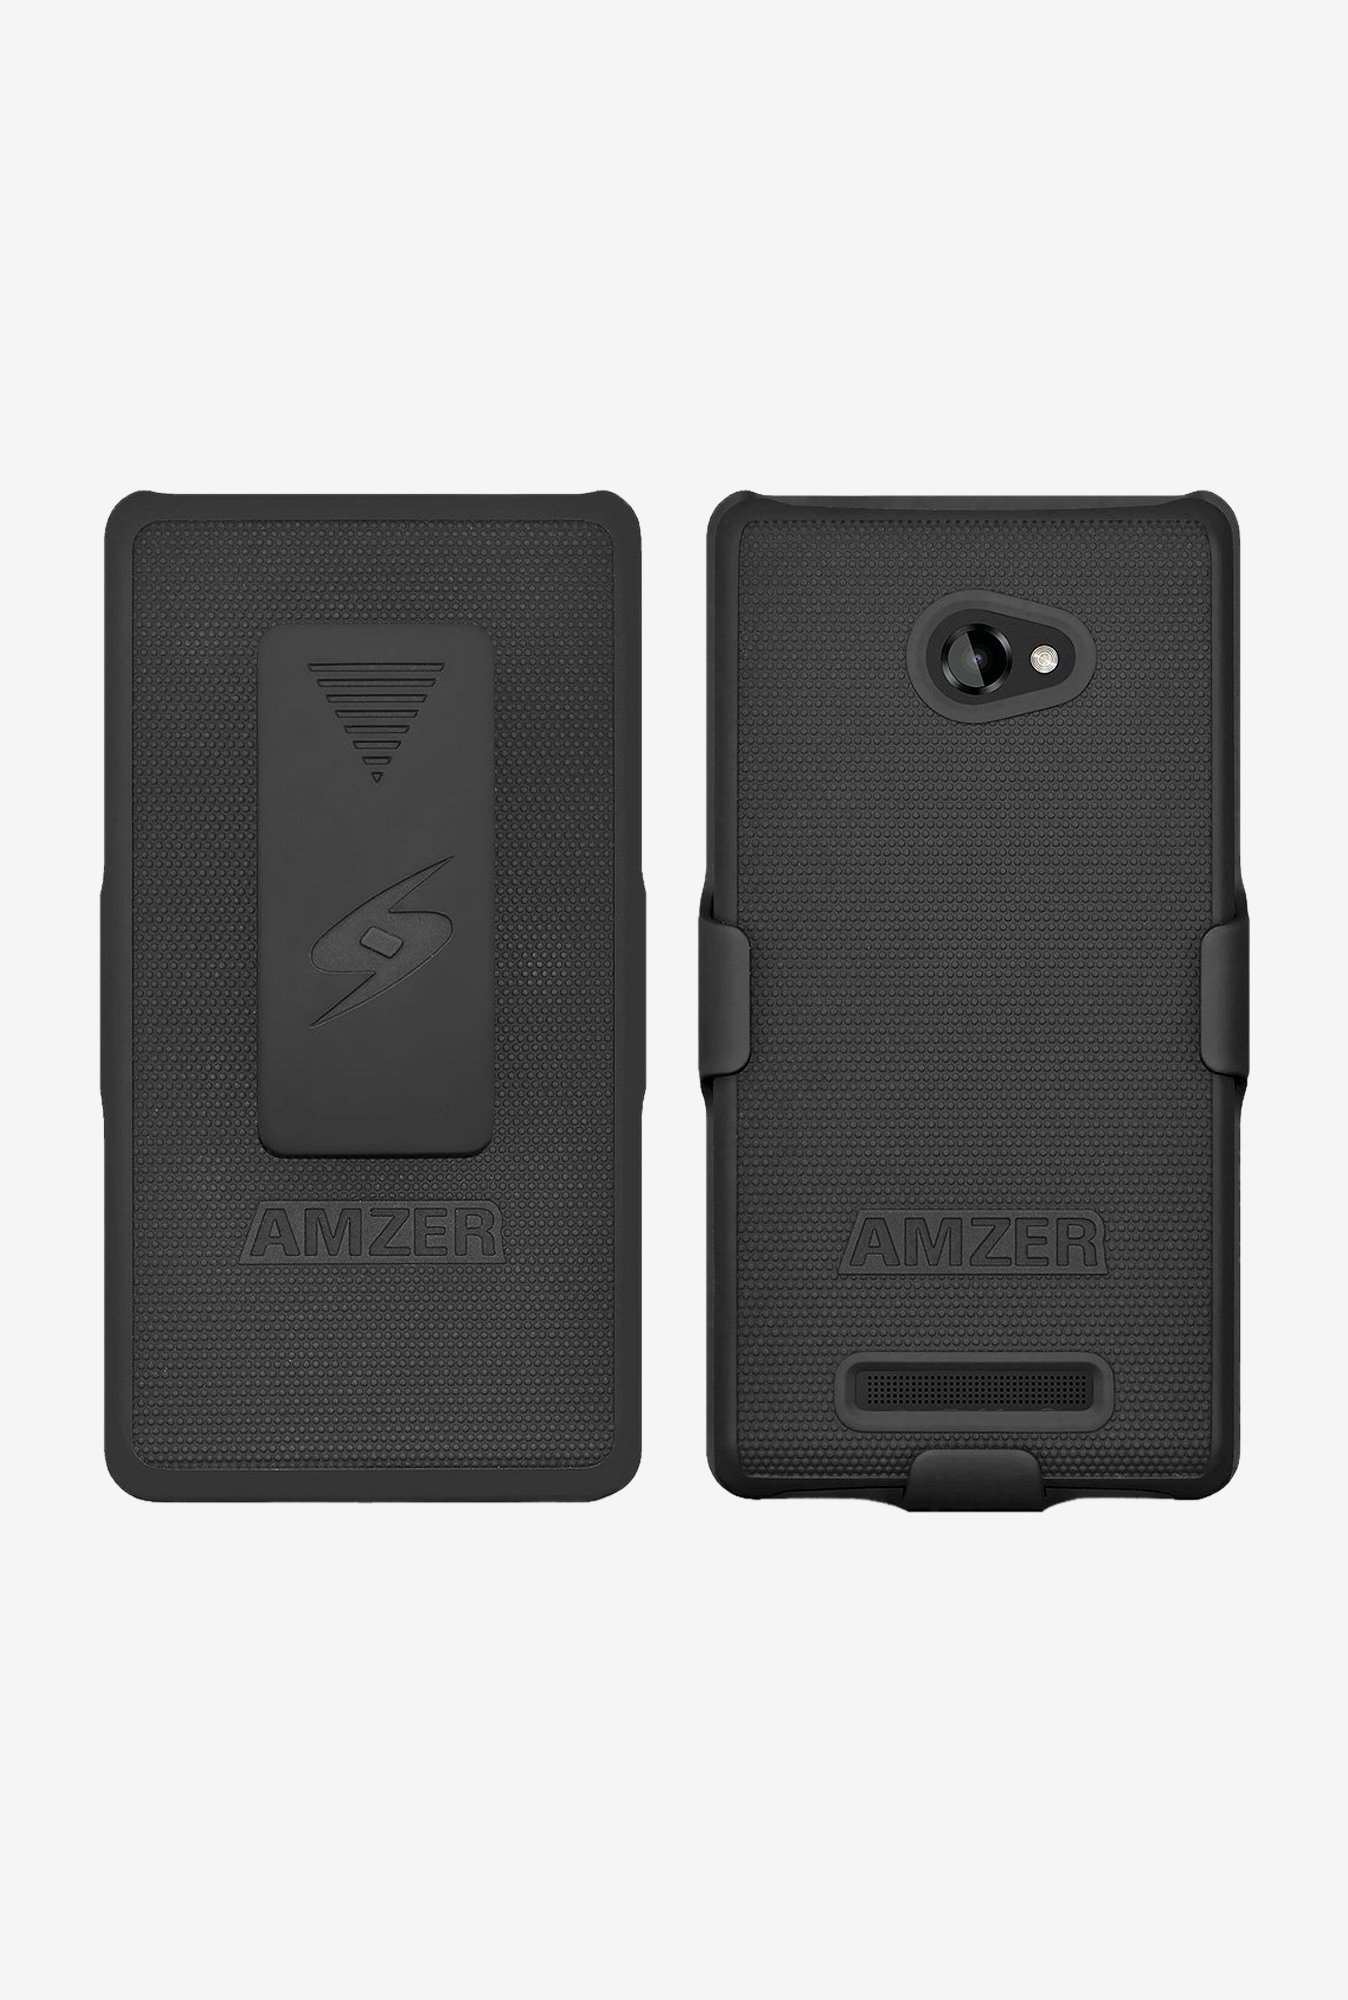 Amzer Shellster Shell Case Black for BlackBerry Z10